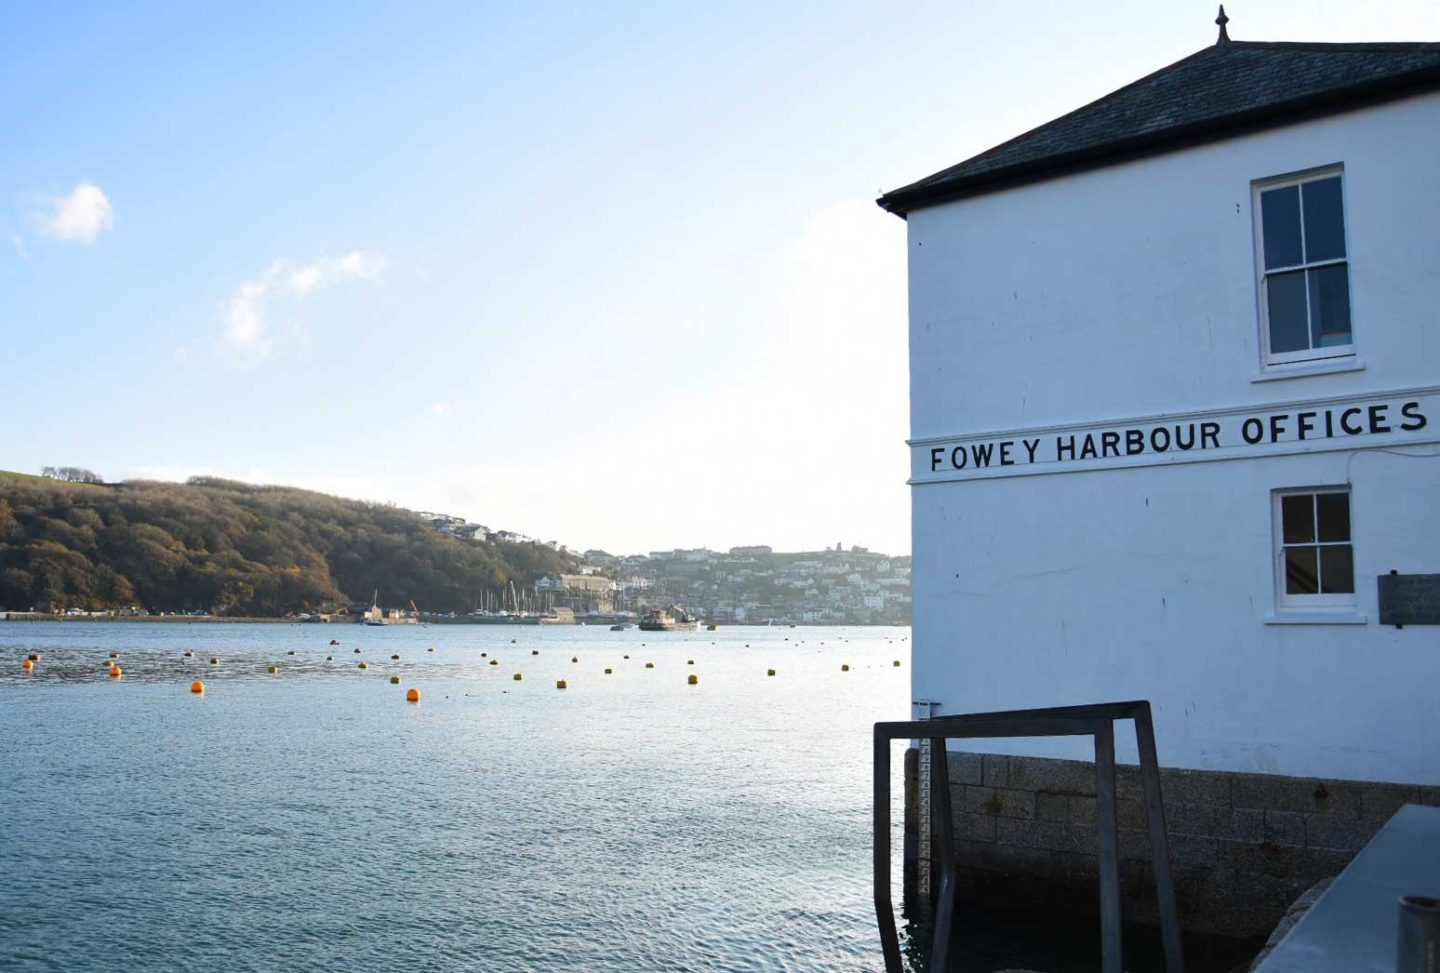 fowey harbour office